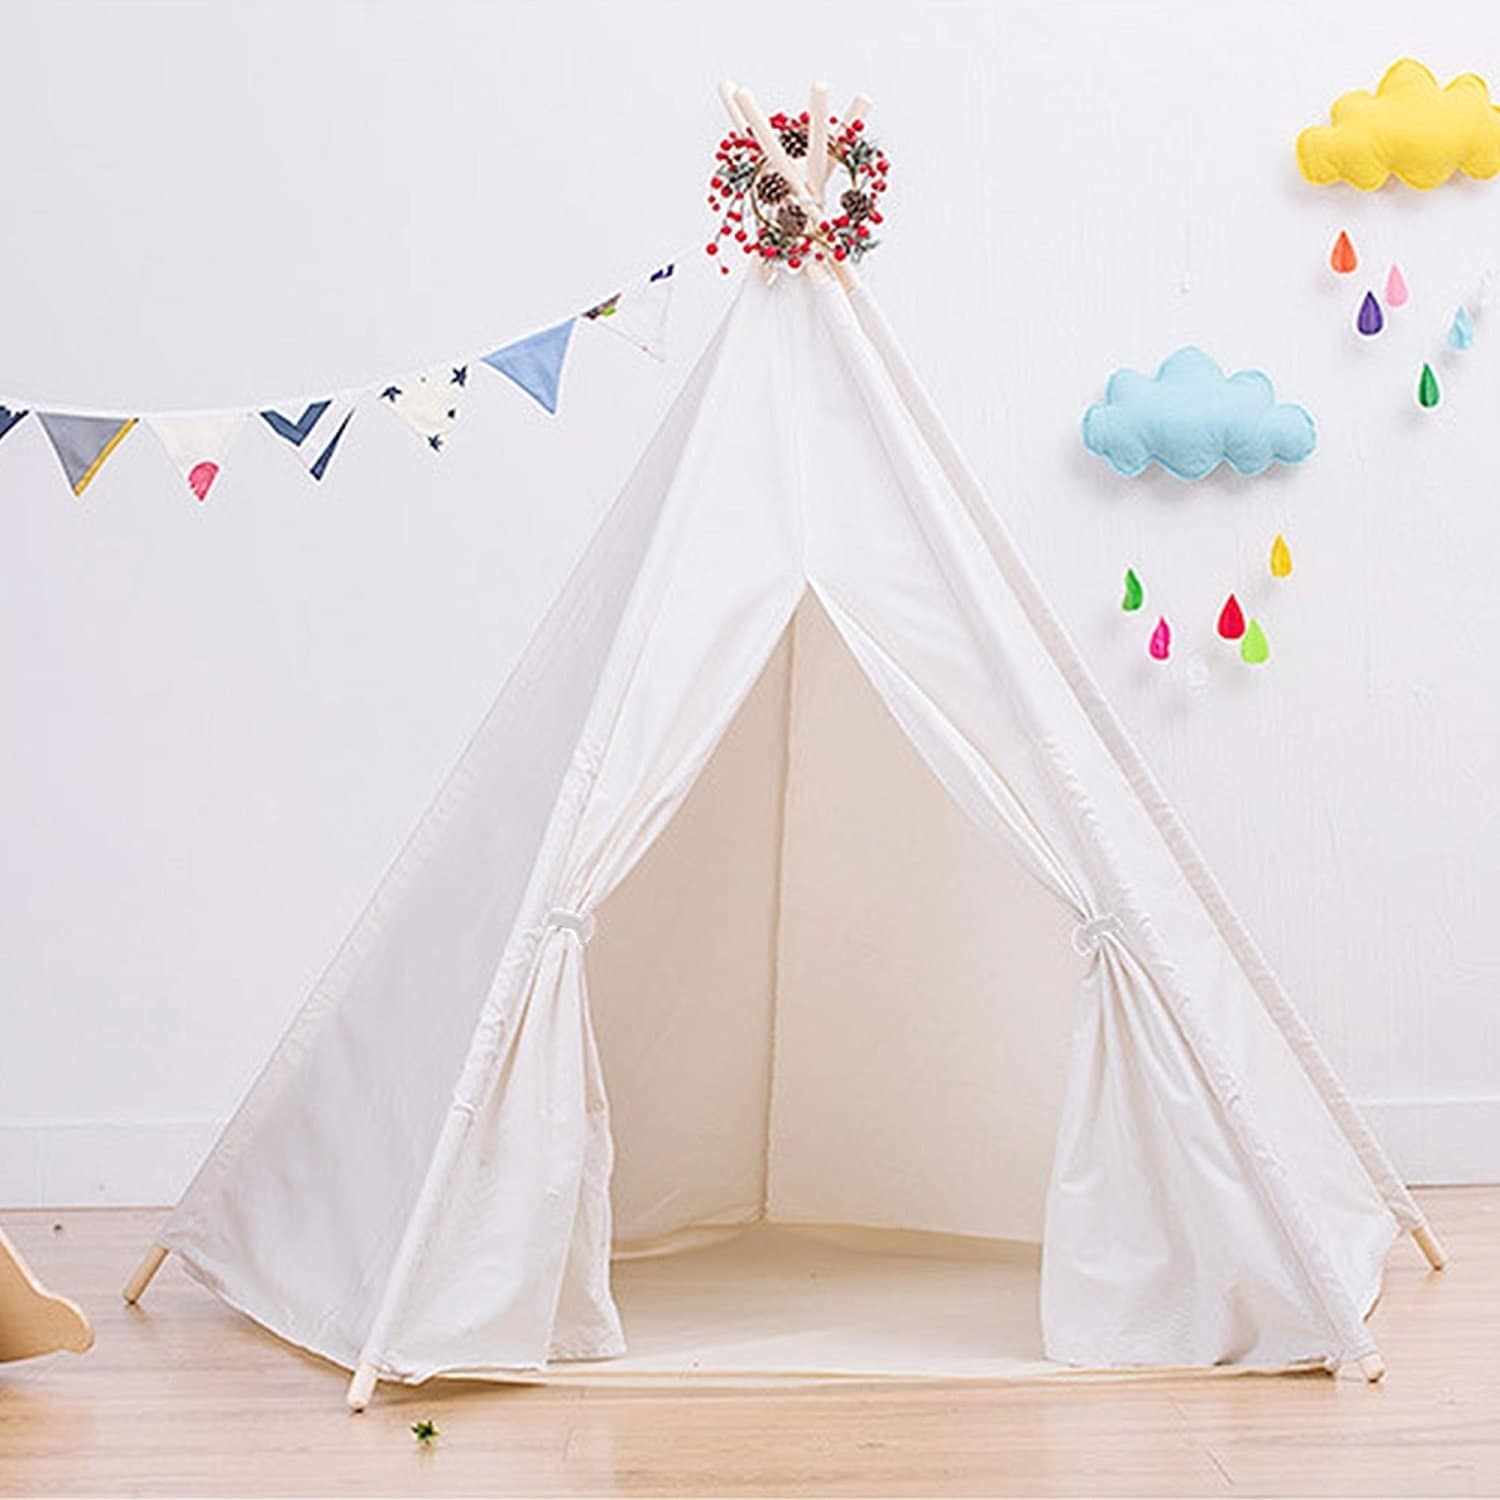 Dimple Large Cotton Canvas Teepee Tent  Free Shipping Today